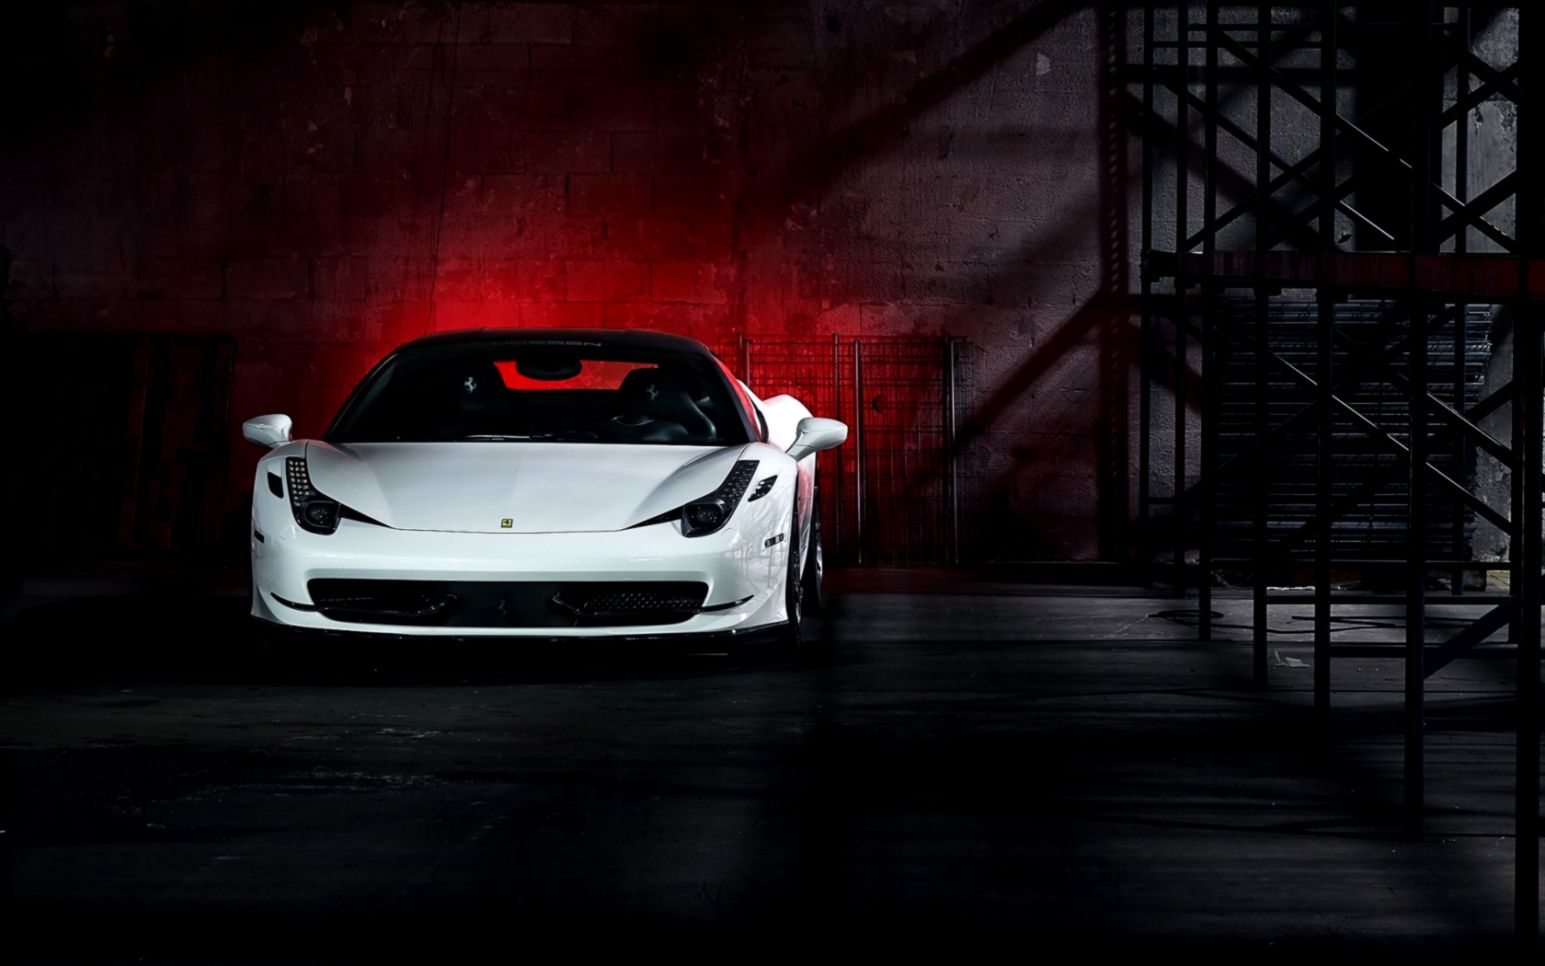 Ferrari 458 Italia White Car Hd Wallpaper | Free High ...